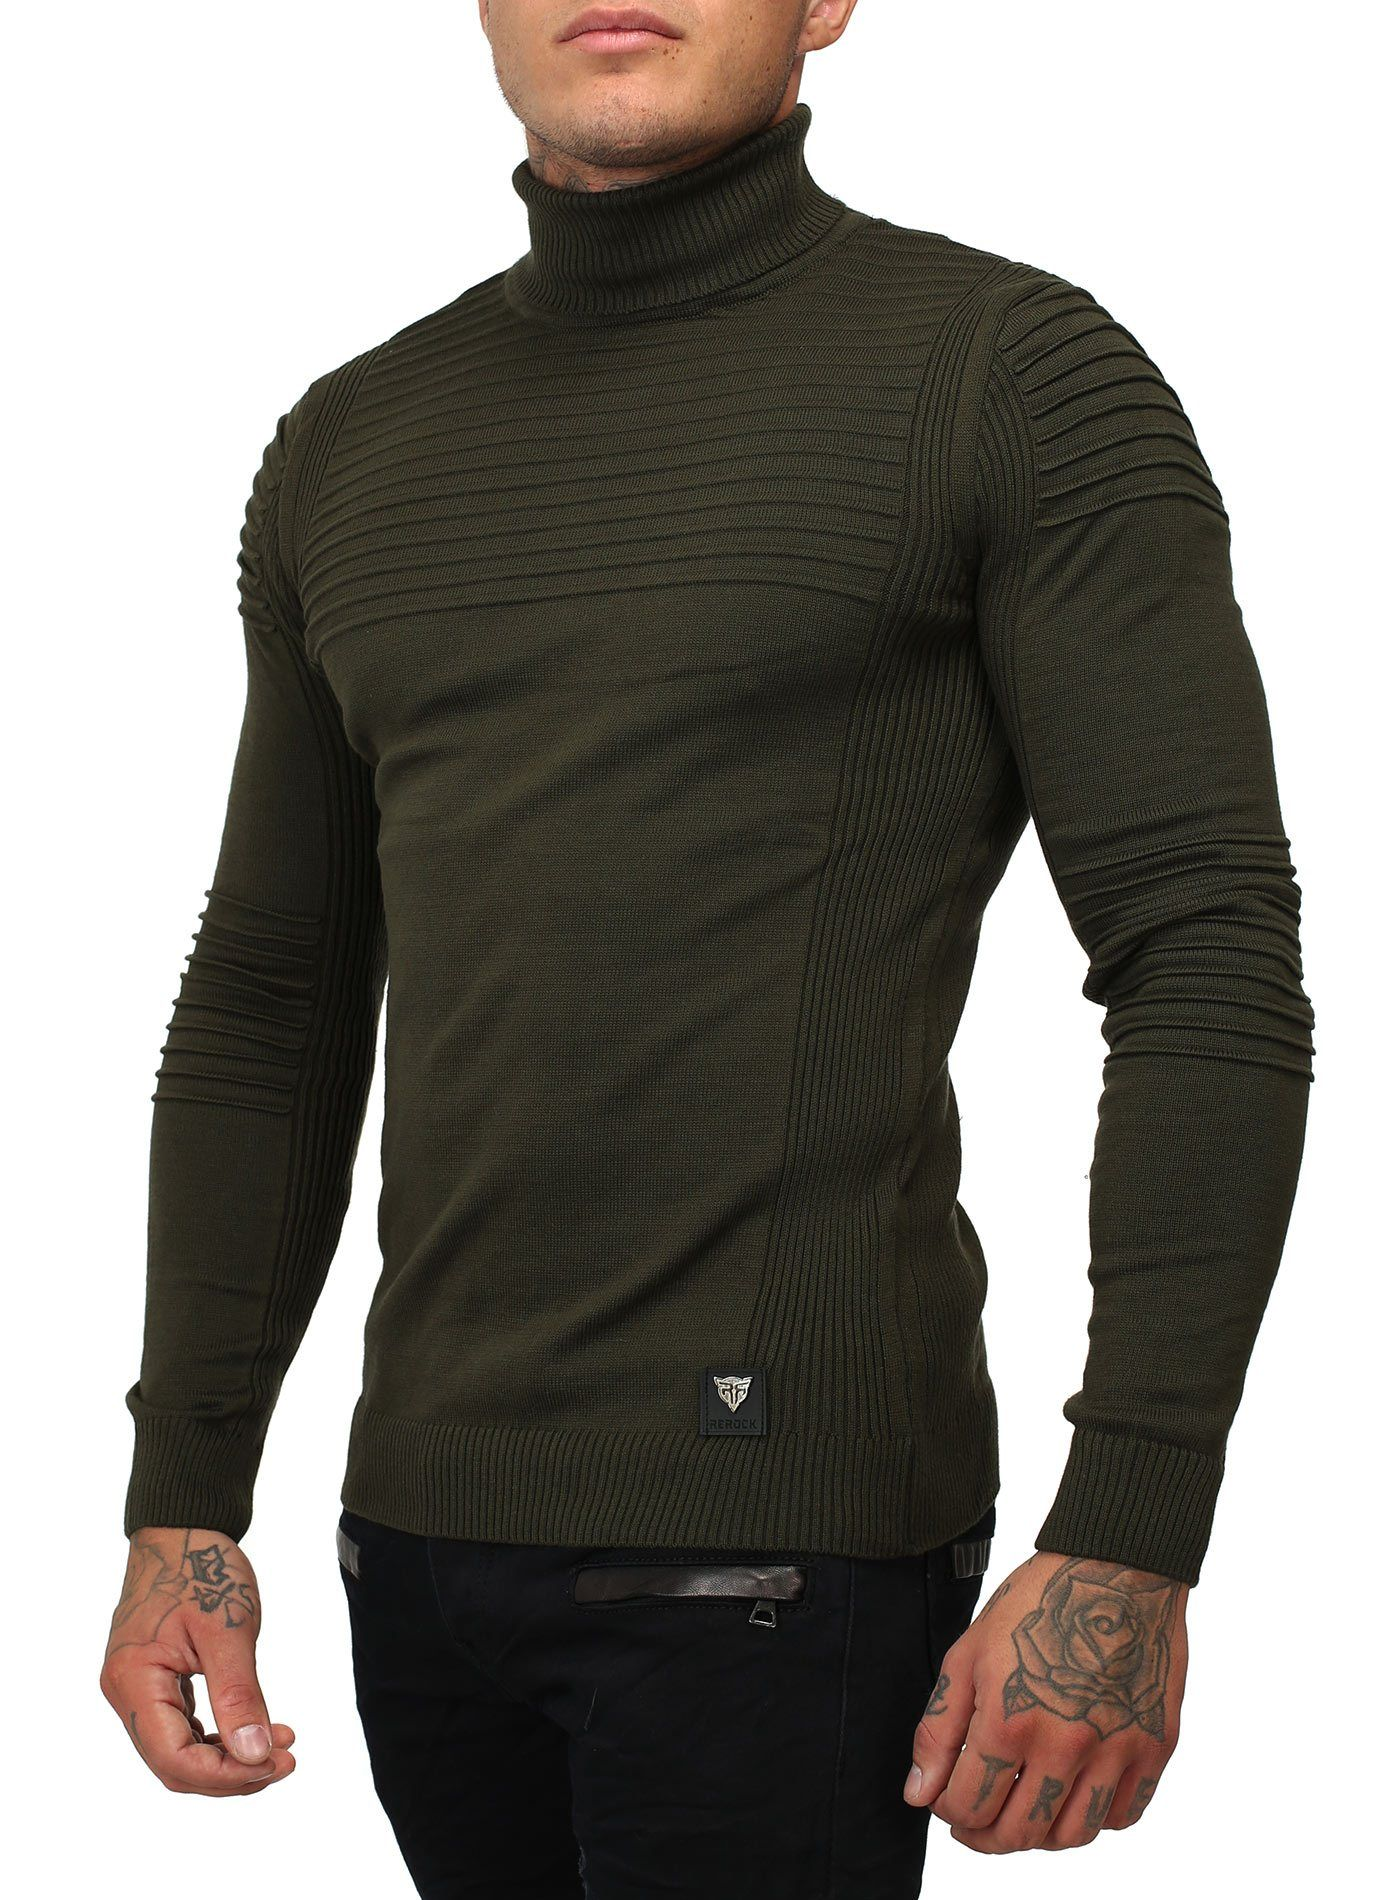 R&R Men Stylish Turtle Neck Ribbed Sweater Green | Mens